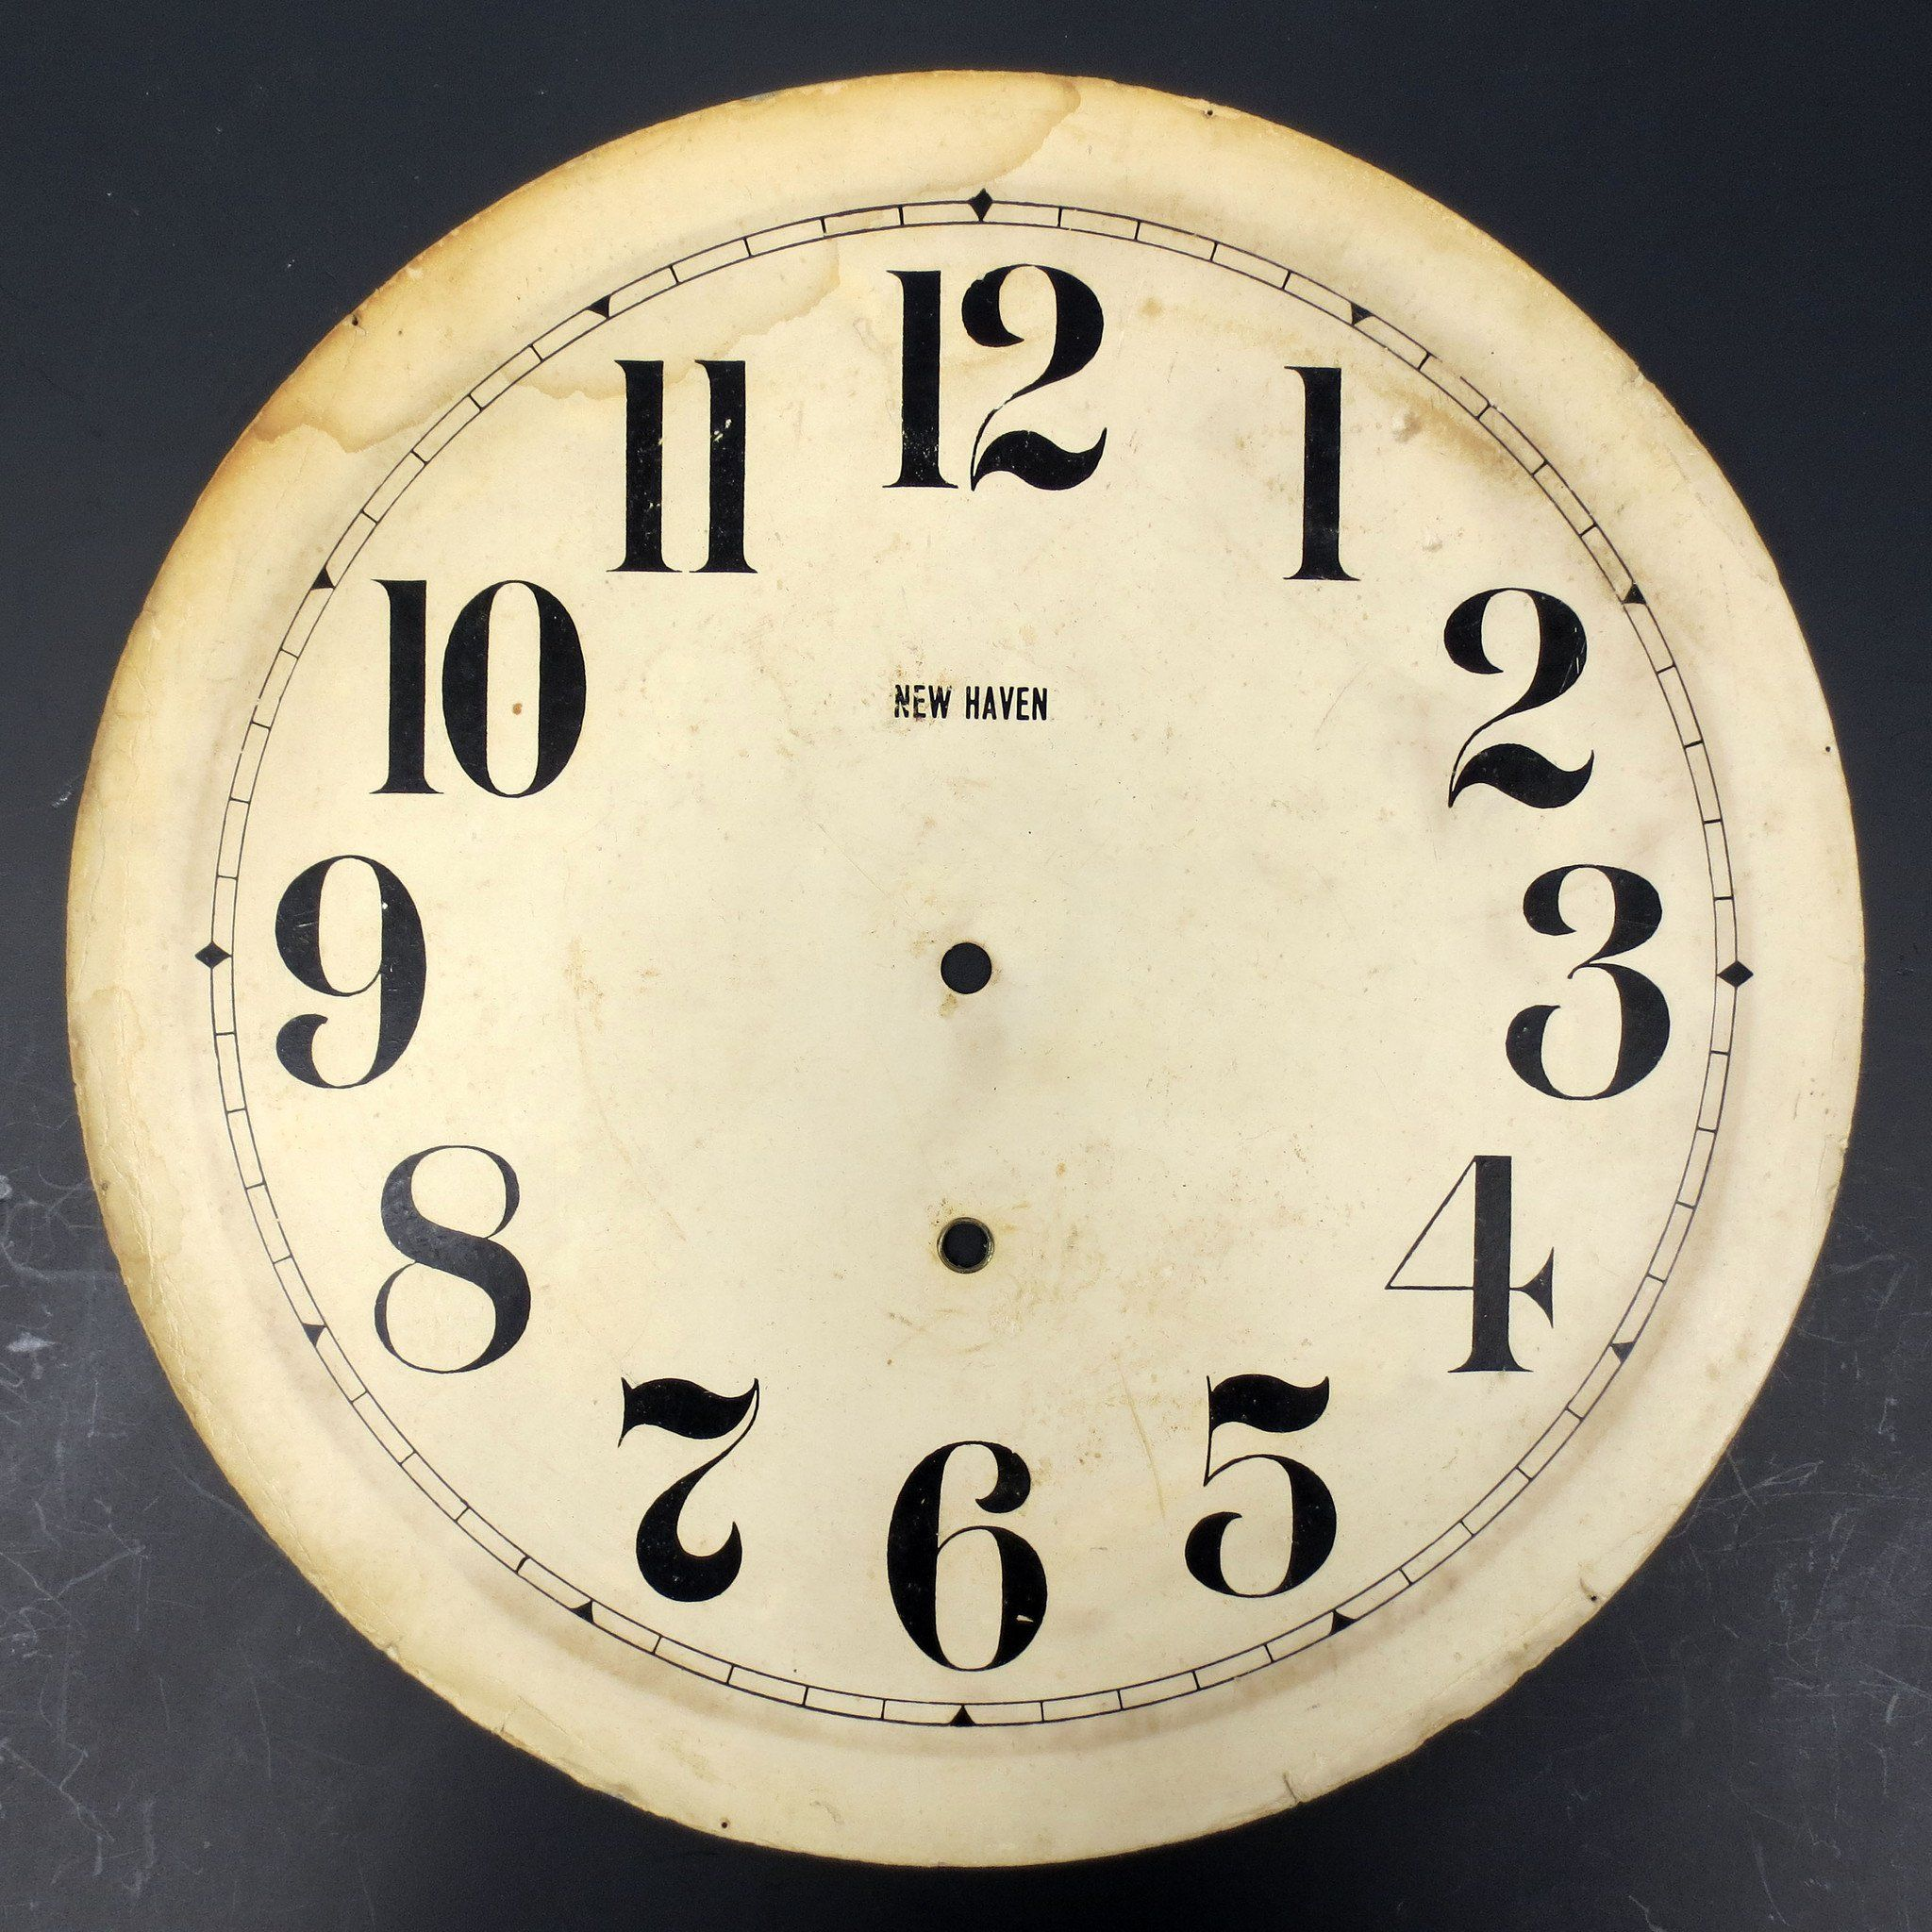 Vintage Large New Haven Wall Clock Dial Face 13 Regulator Wall Clock Store Box Wall Clock Dial Wall Clock Clock